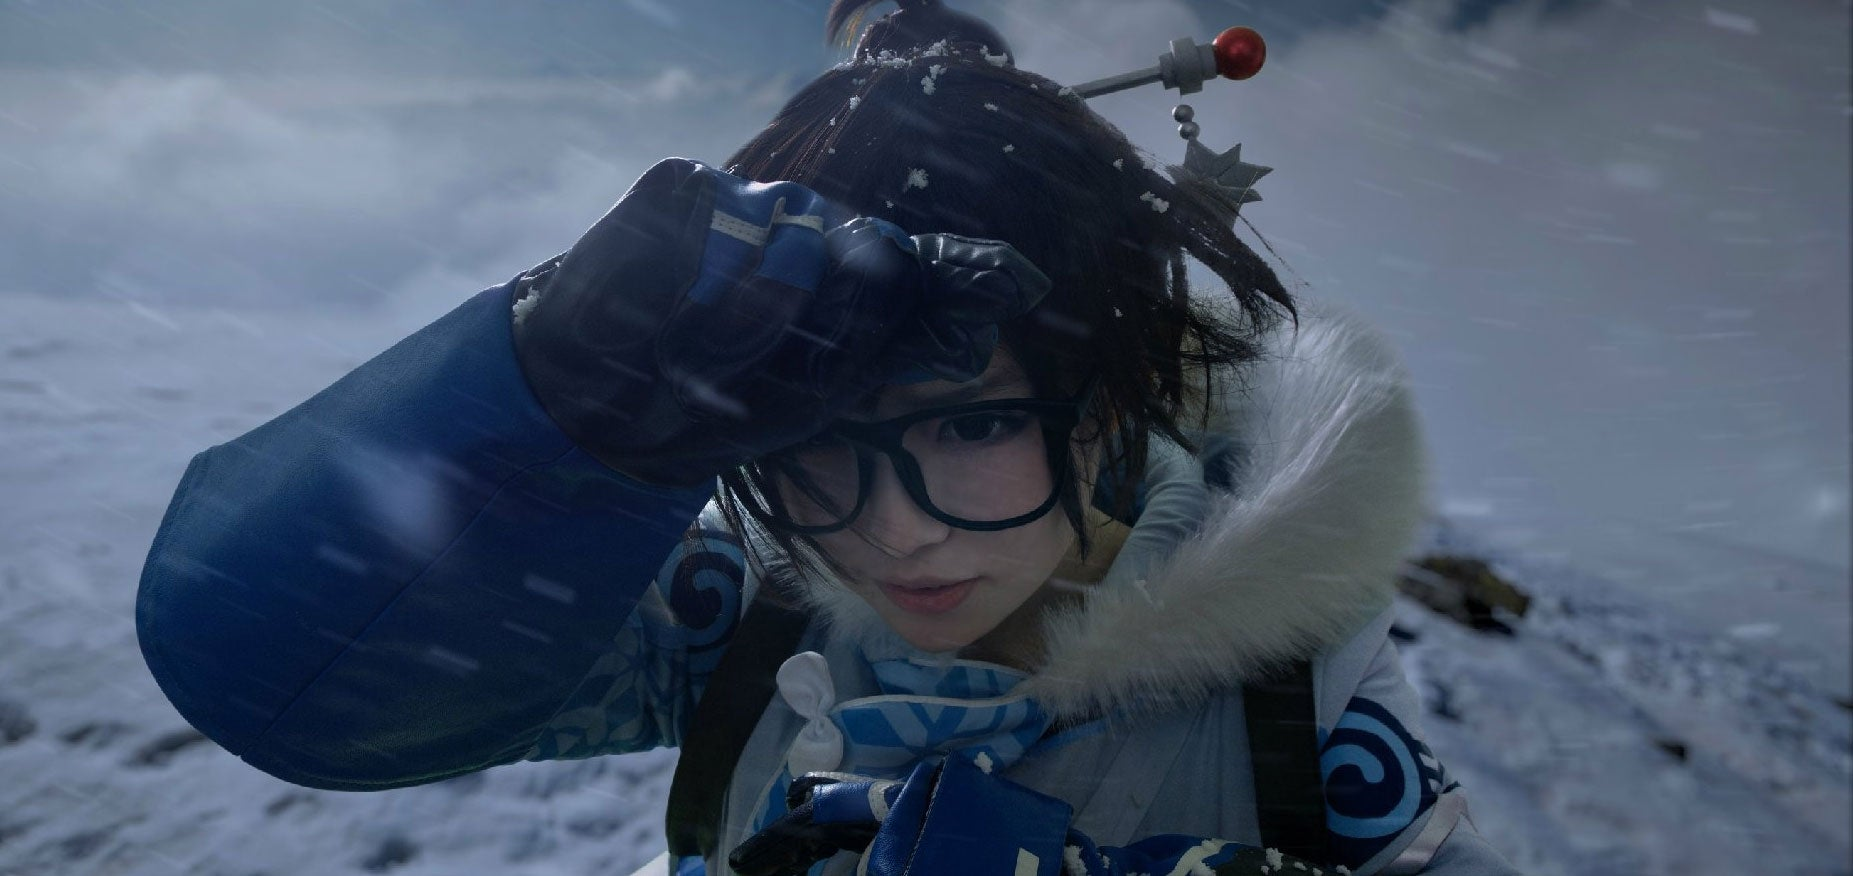 Chinese Mei Cosplay Has Plenty Of Chill